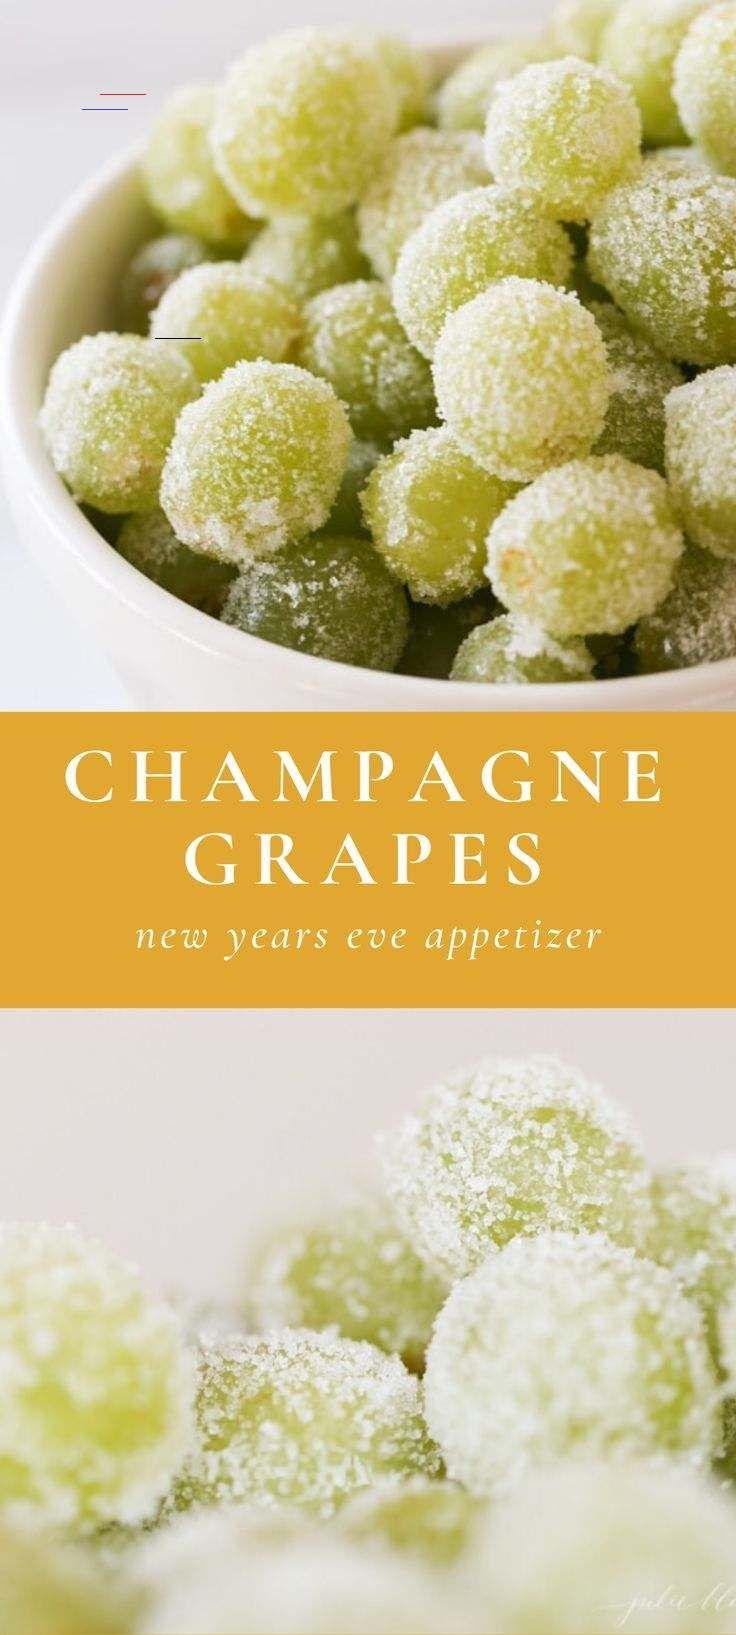 Ring in the year with sweet, sparkling Sugar Champagne Grapes – a poppable appetizer or dessert that will have everyone raving! <a class=pintag href=/explore/grapes/ title=#grapes explore Pinterest>#grapes</a> <a class=pintag href=/explore/champagne/ title=#champagne explore Pinterest>#champagne</a> <a class=pintag href=/explore/newyearseve/ title=#newyearseve explore Pinterest>#newyearseve</a> <a class=pintag href=/explore/NYE/ title=#NYE explore Pinterest>#NYE</a>  Ring in the year with sweet,